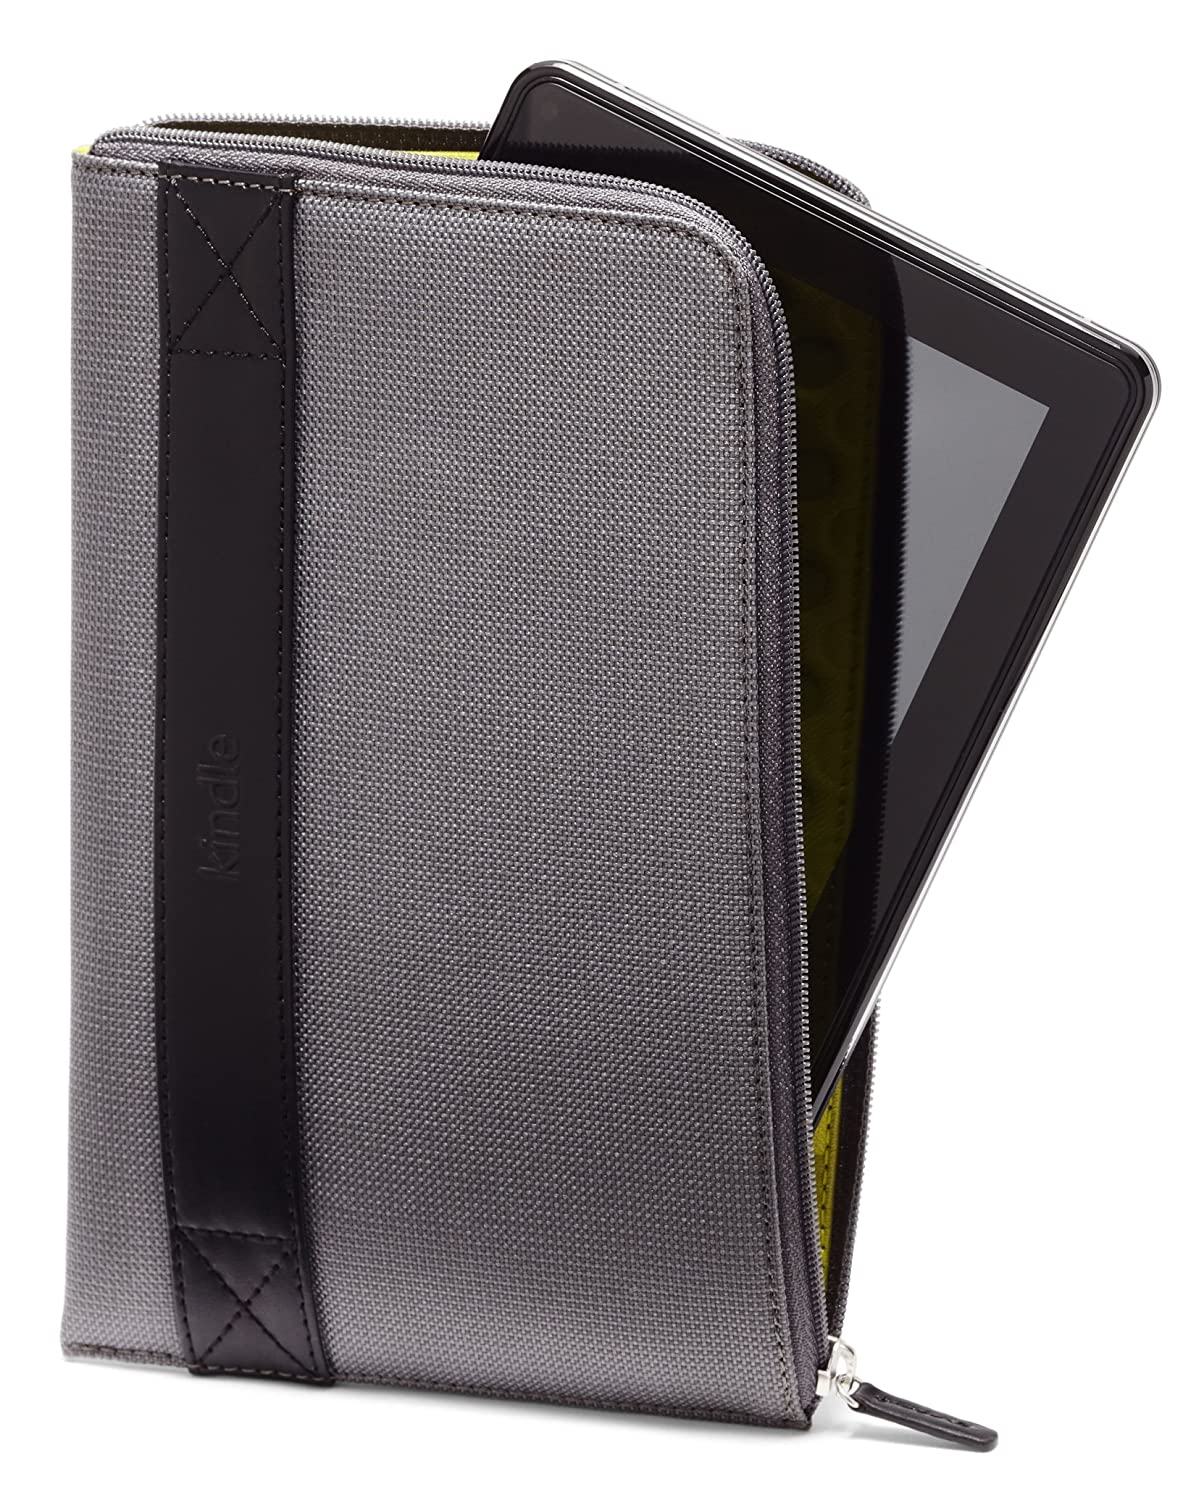 download middot italian design office. amazon zip sleeve for 7inch tablets graphite amazoncouk kindle store download middot italian design office p